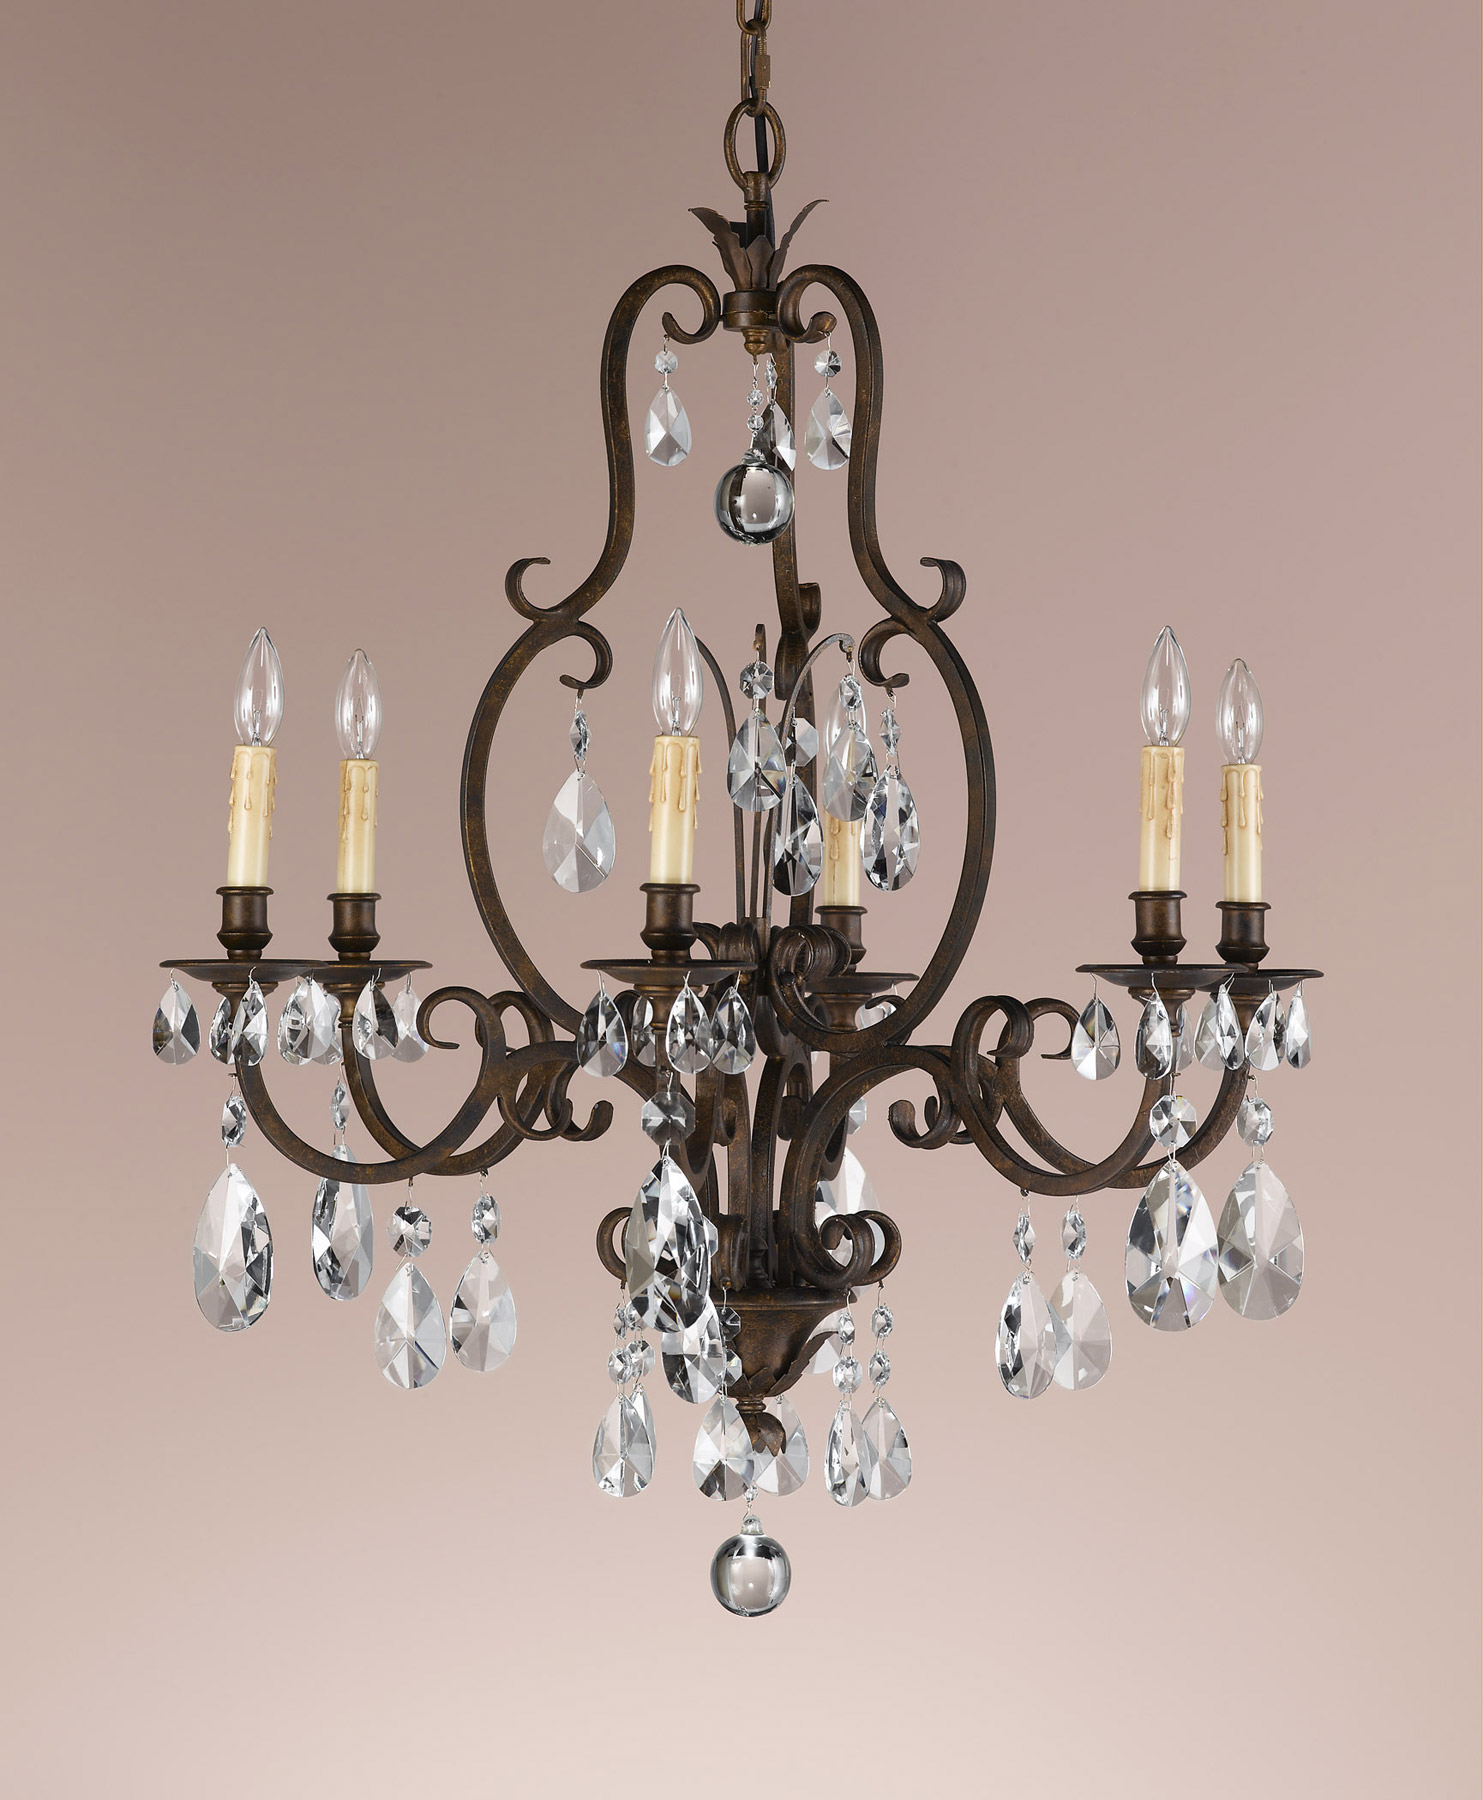 Murray Feiss F2228 6ats Crystal Salon Maison Six Light